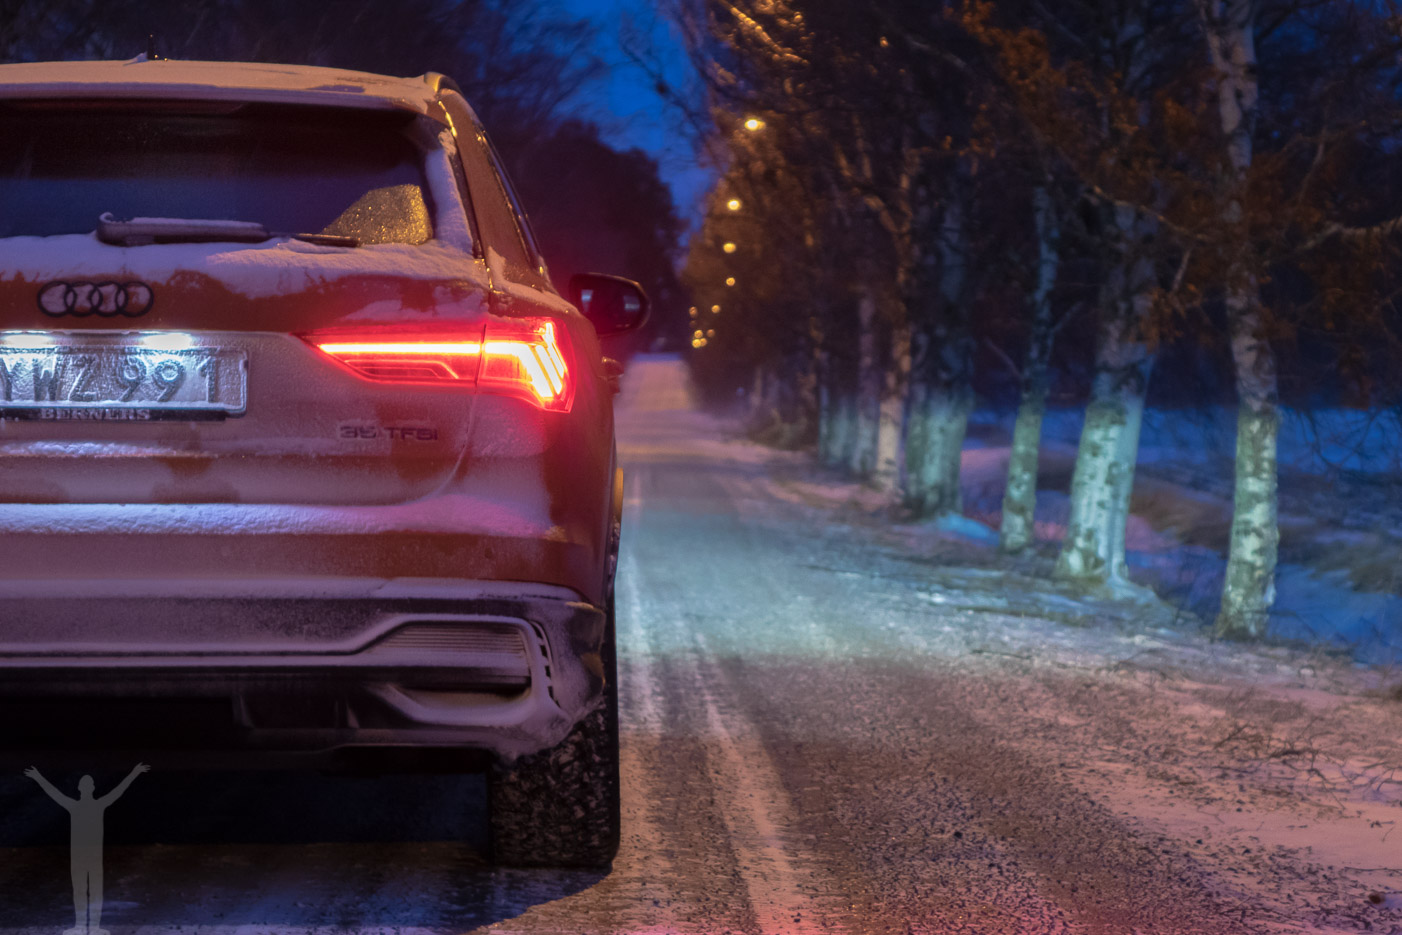 Nya Audi Q3 by night